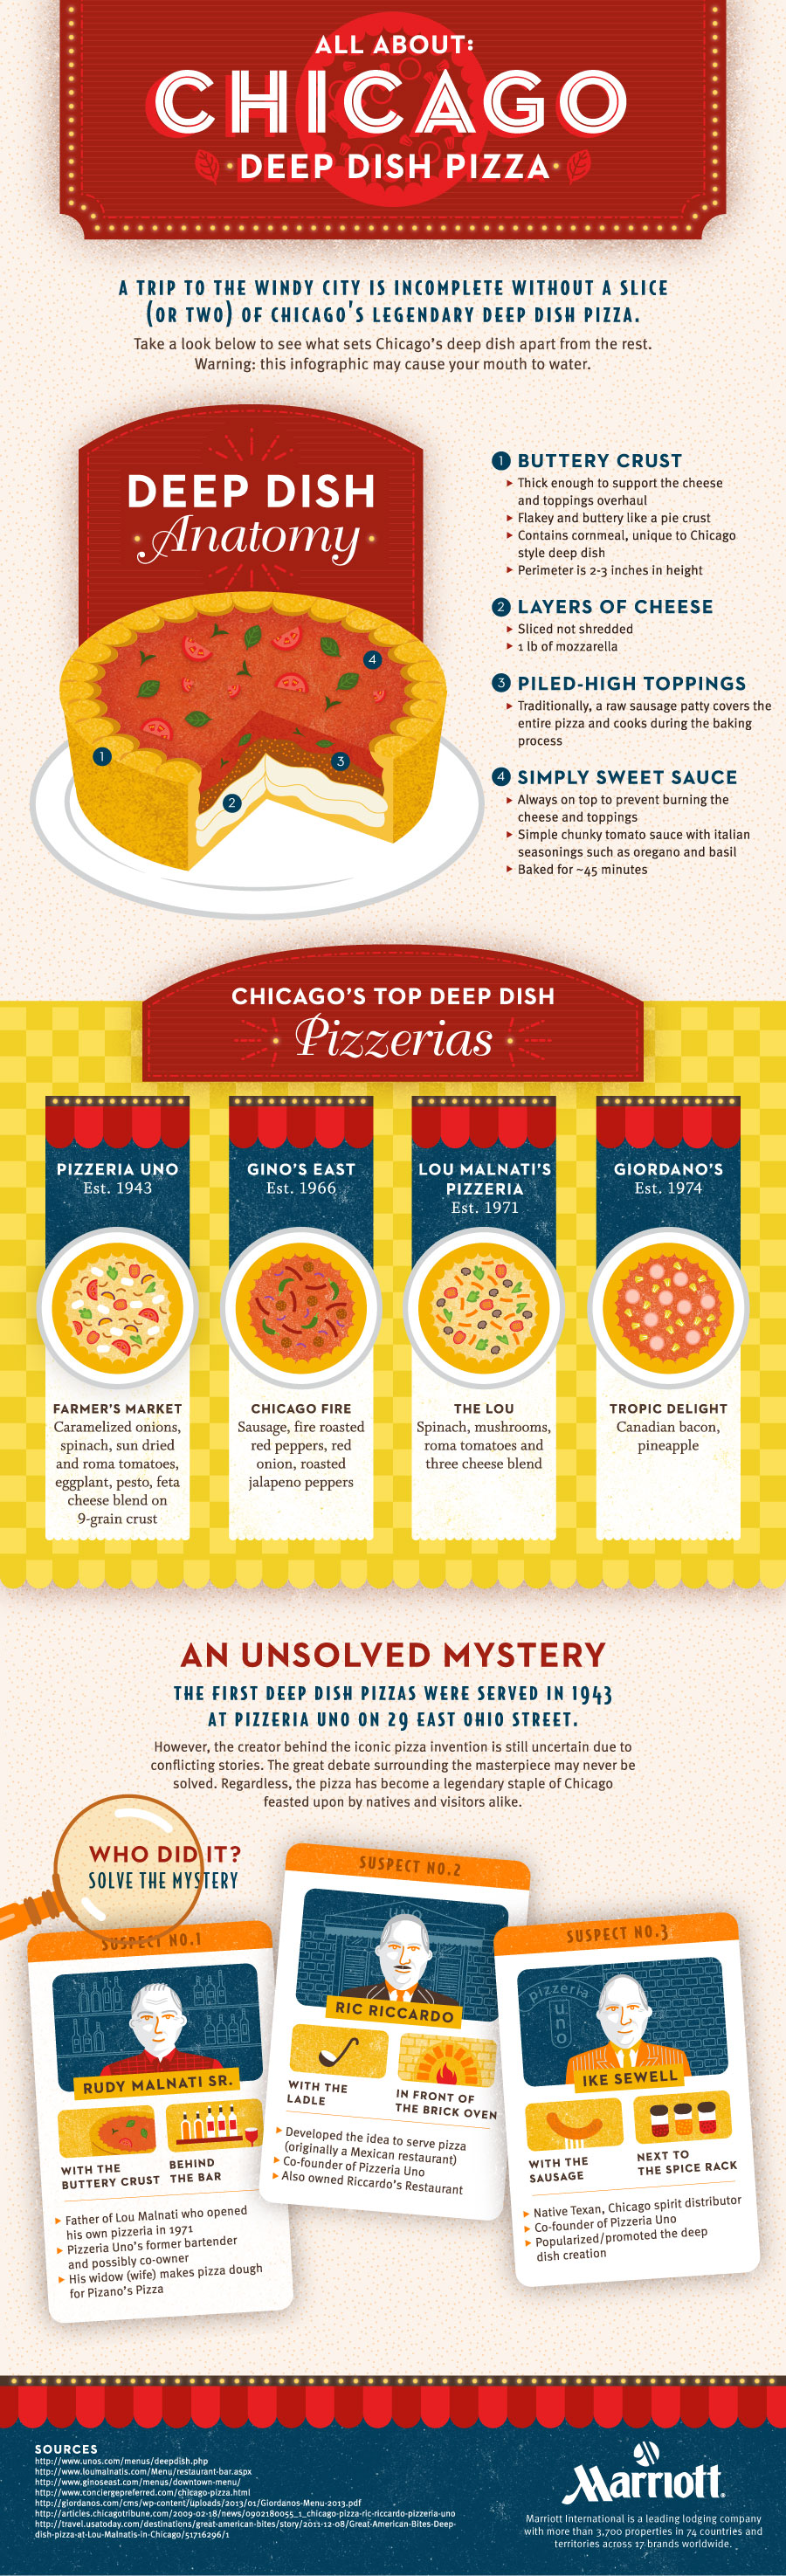 05 Chicago-Pizza-updated-final-Infographic